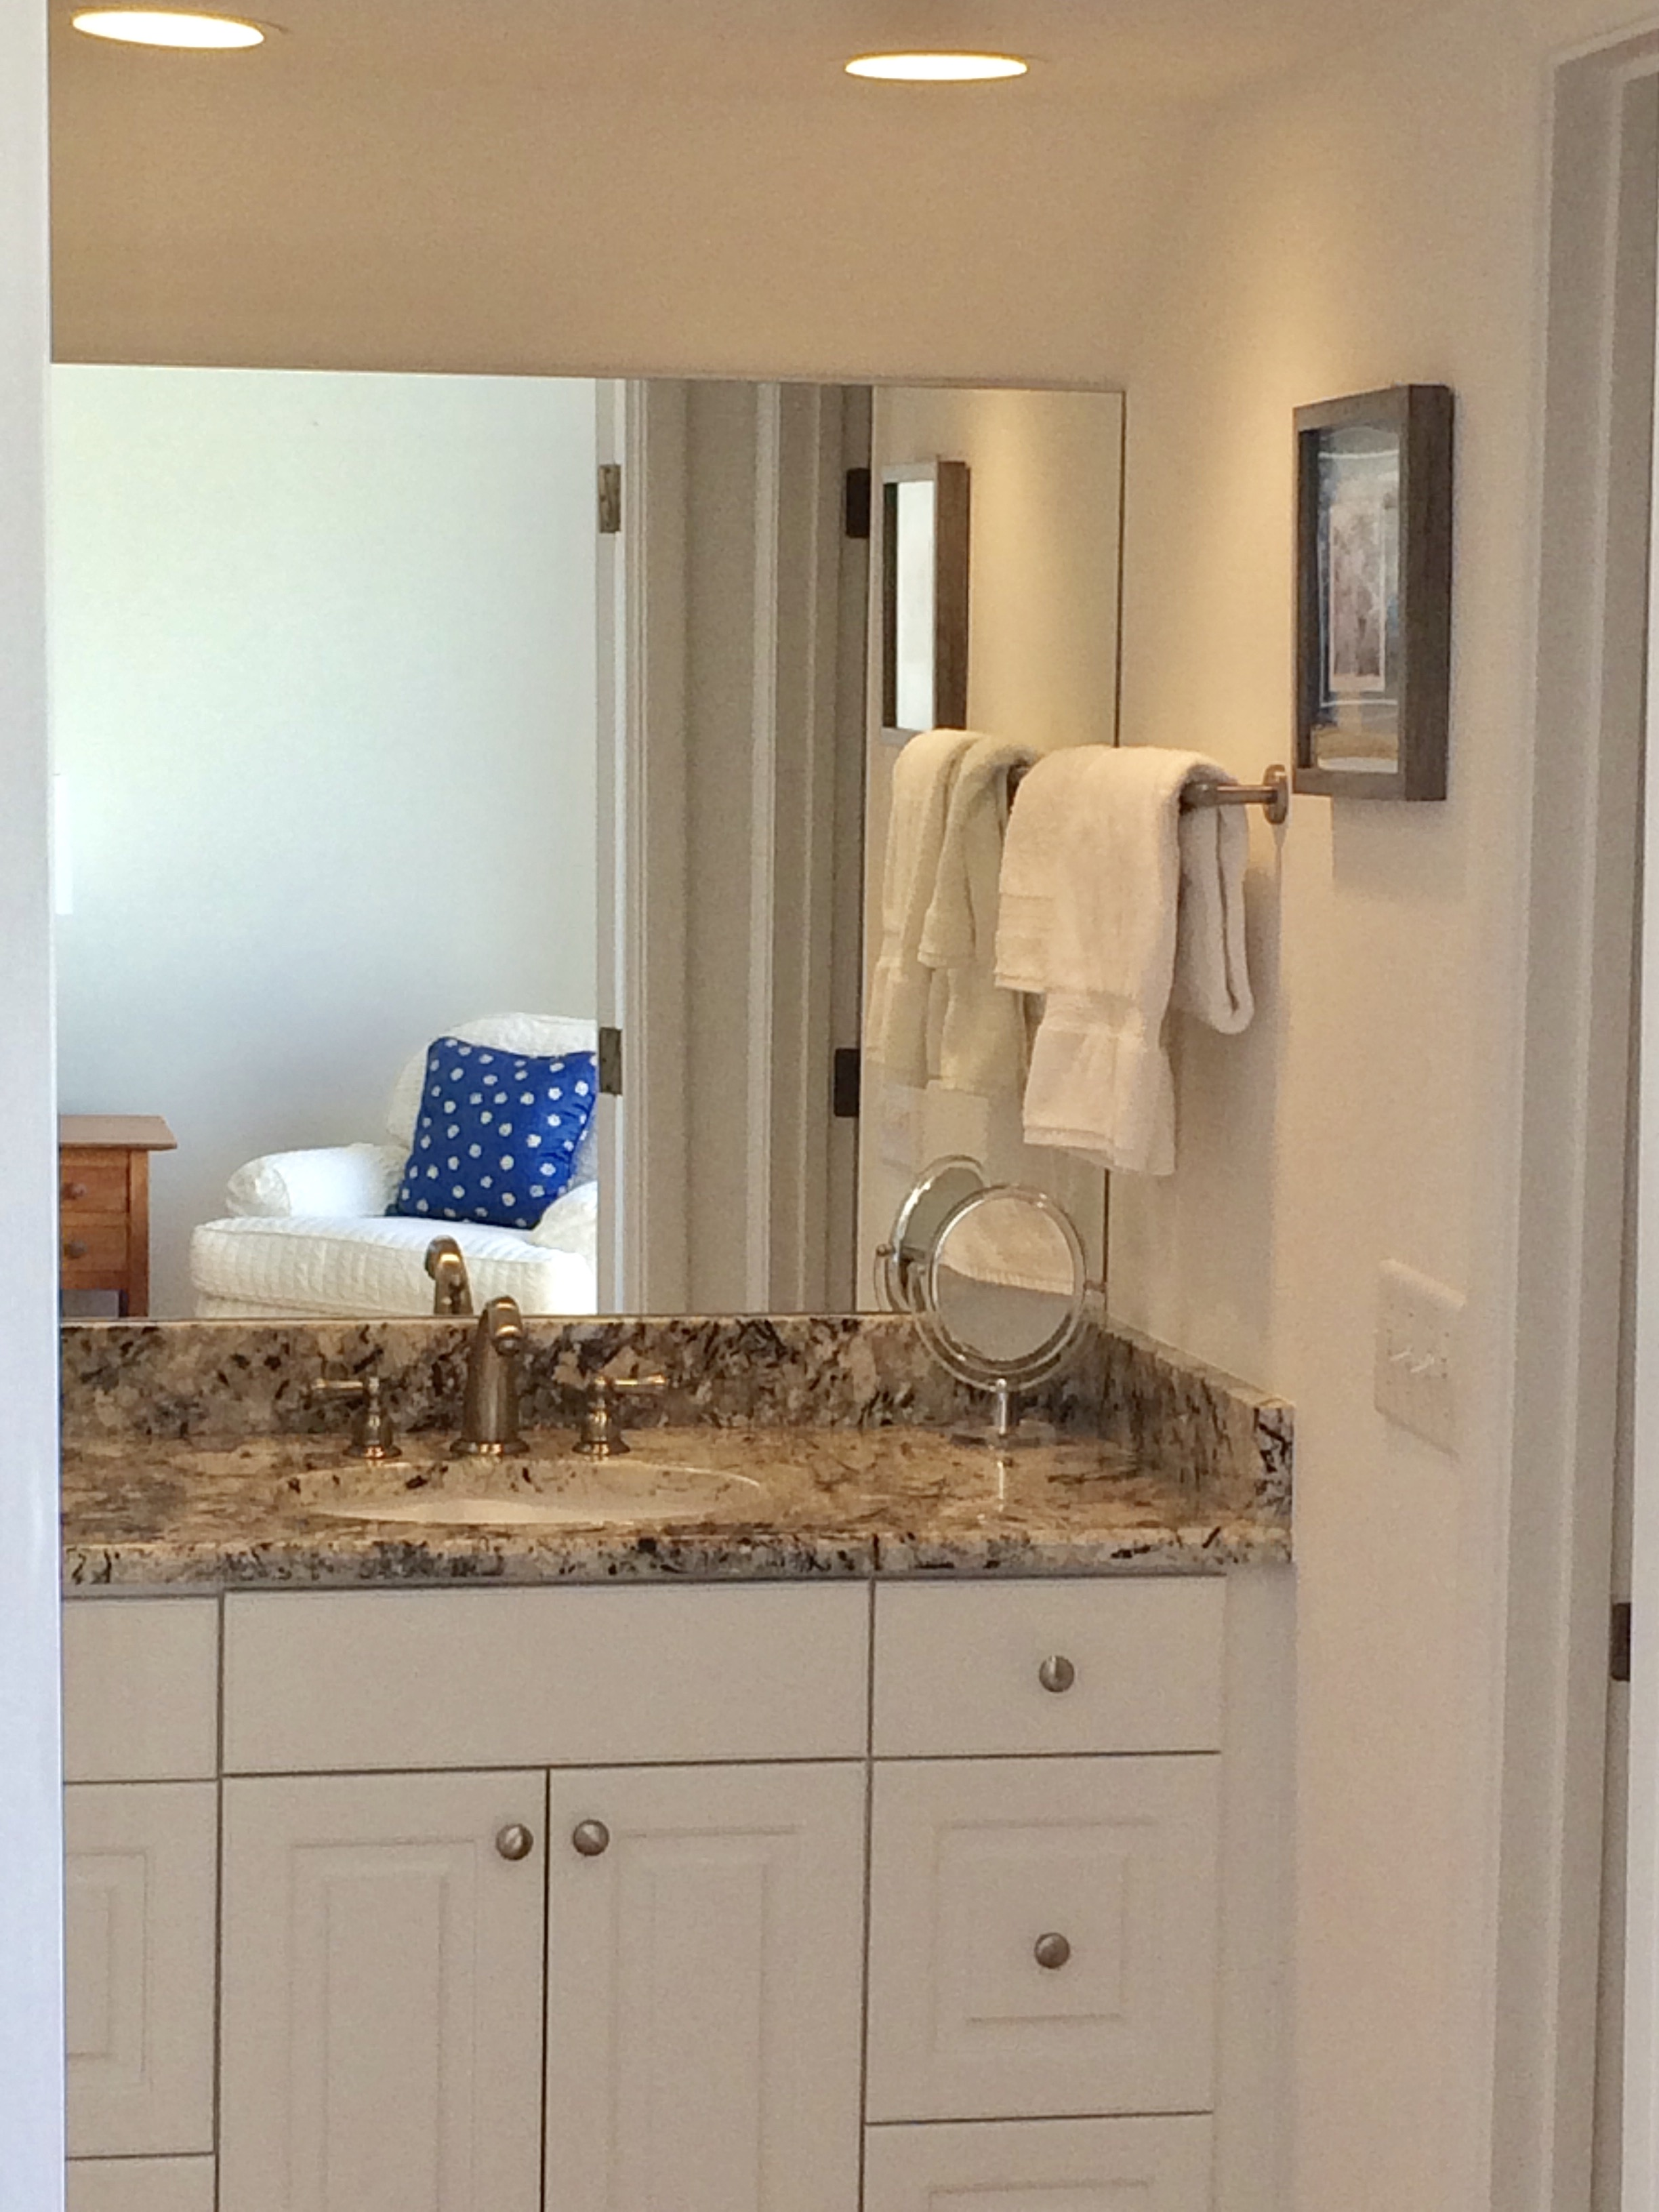 The separate sink area makes it easier for two to get ready for their activities.